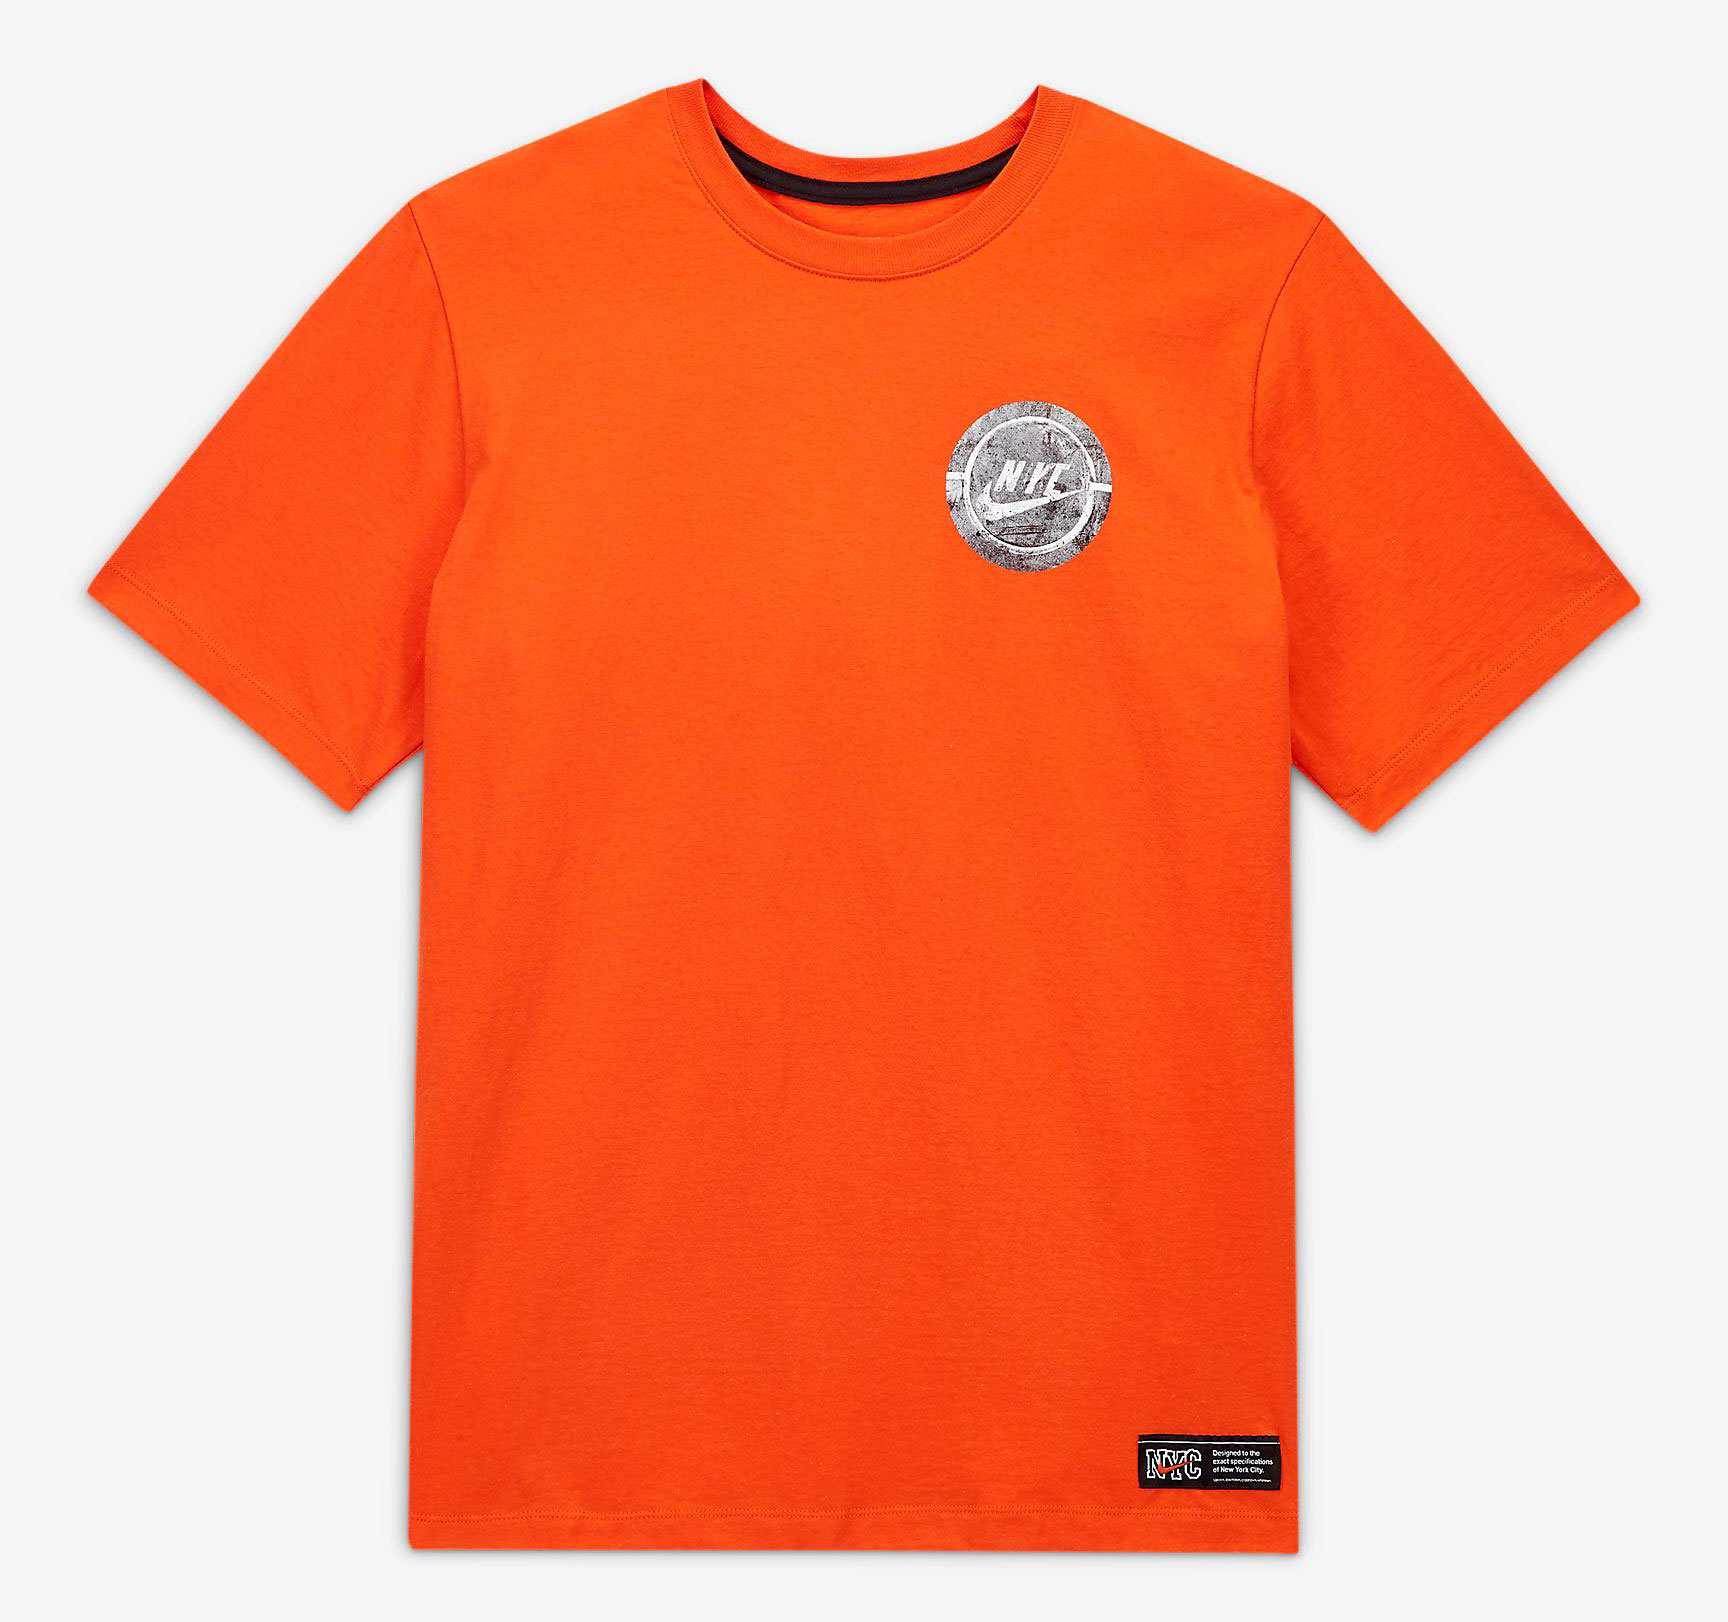 nike-air-force-1-ny-vs-ny-shirt-match-orange-1